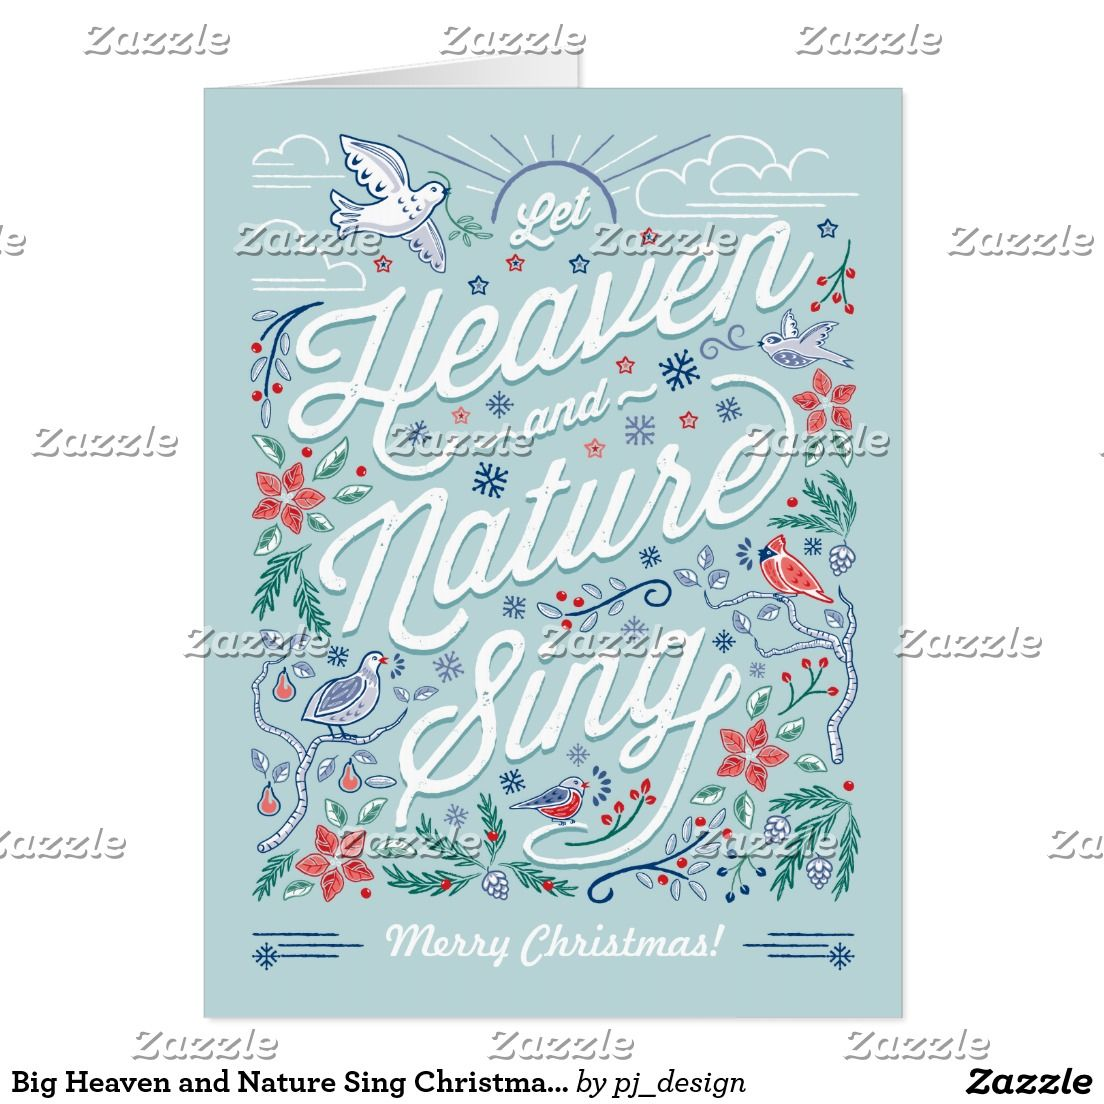 big heaven and nature sing christmas card mint - Mint Christmas Cards